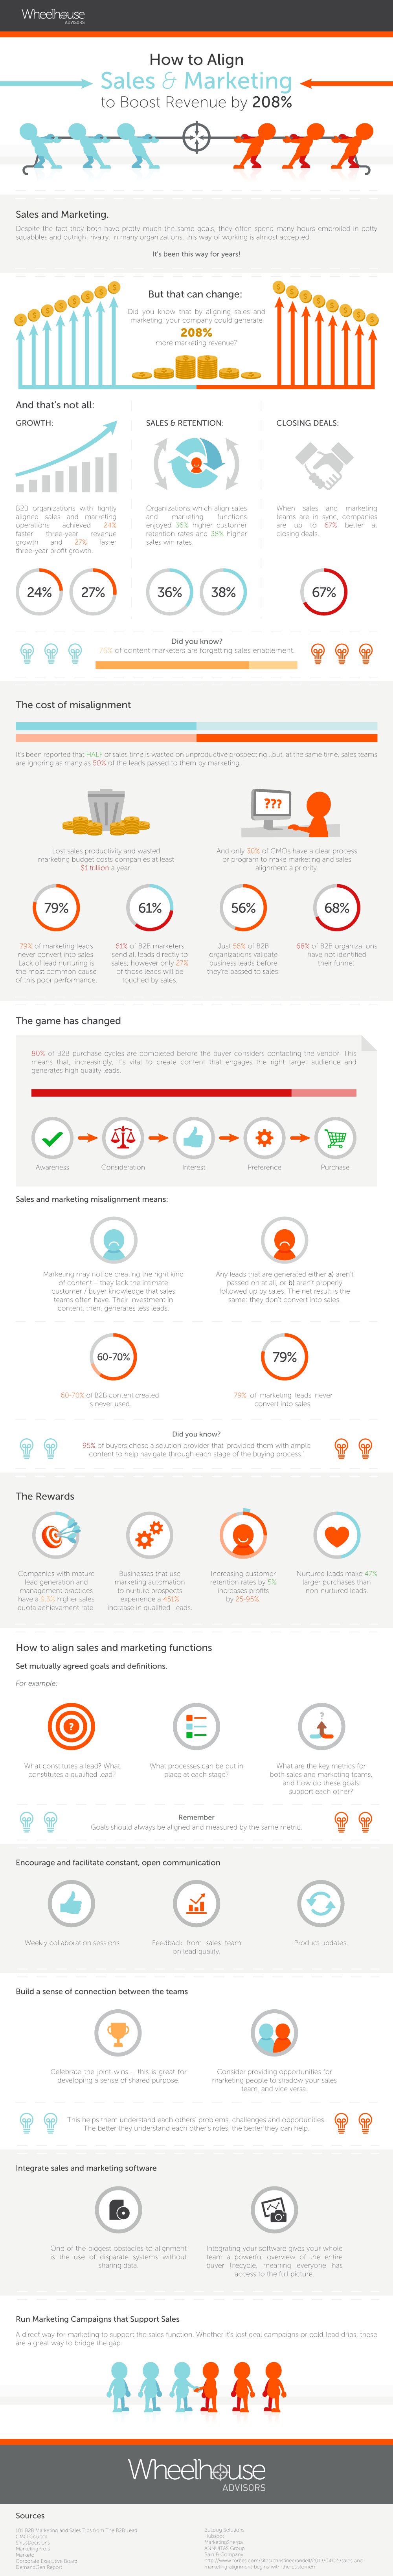 Smarketing Infographic Wheelhouse